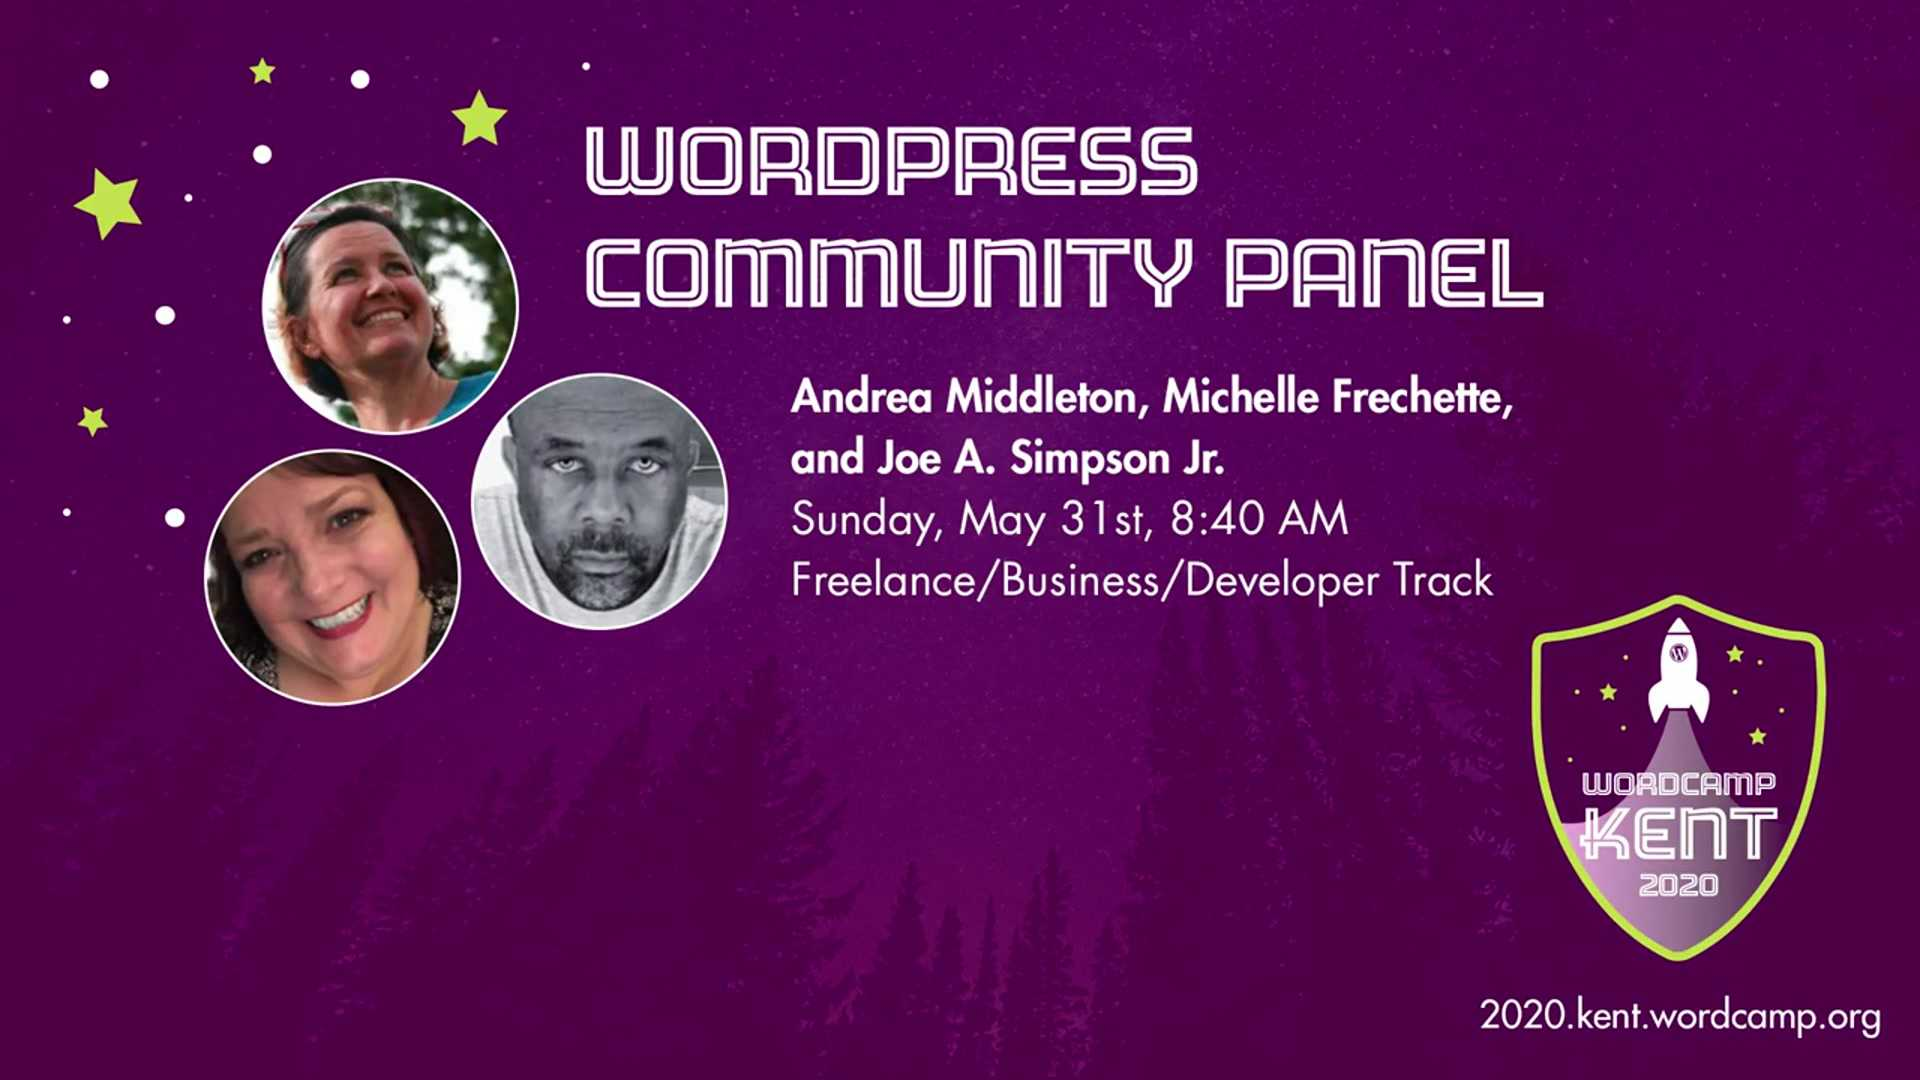 Andrea Middleton, Michelle Frechette, Joe A. Simpson Jr.: WordCamp Kent 2020 Community Panel